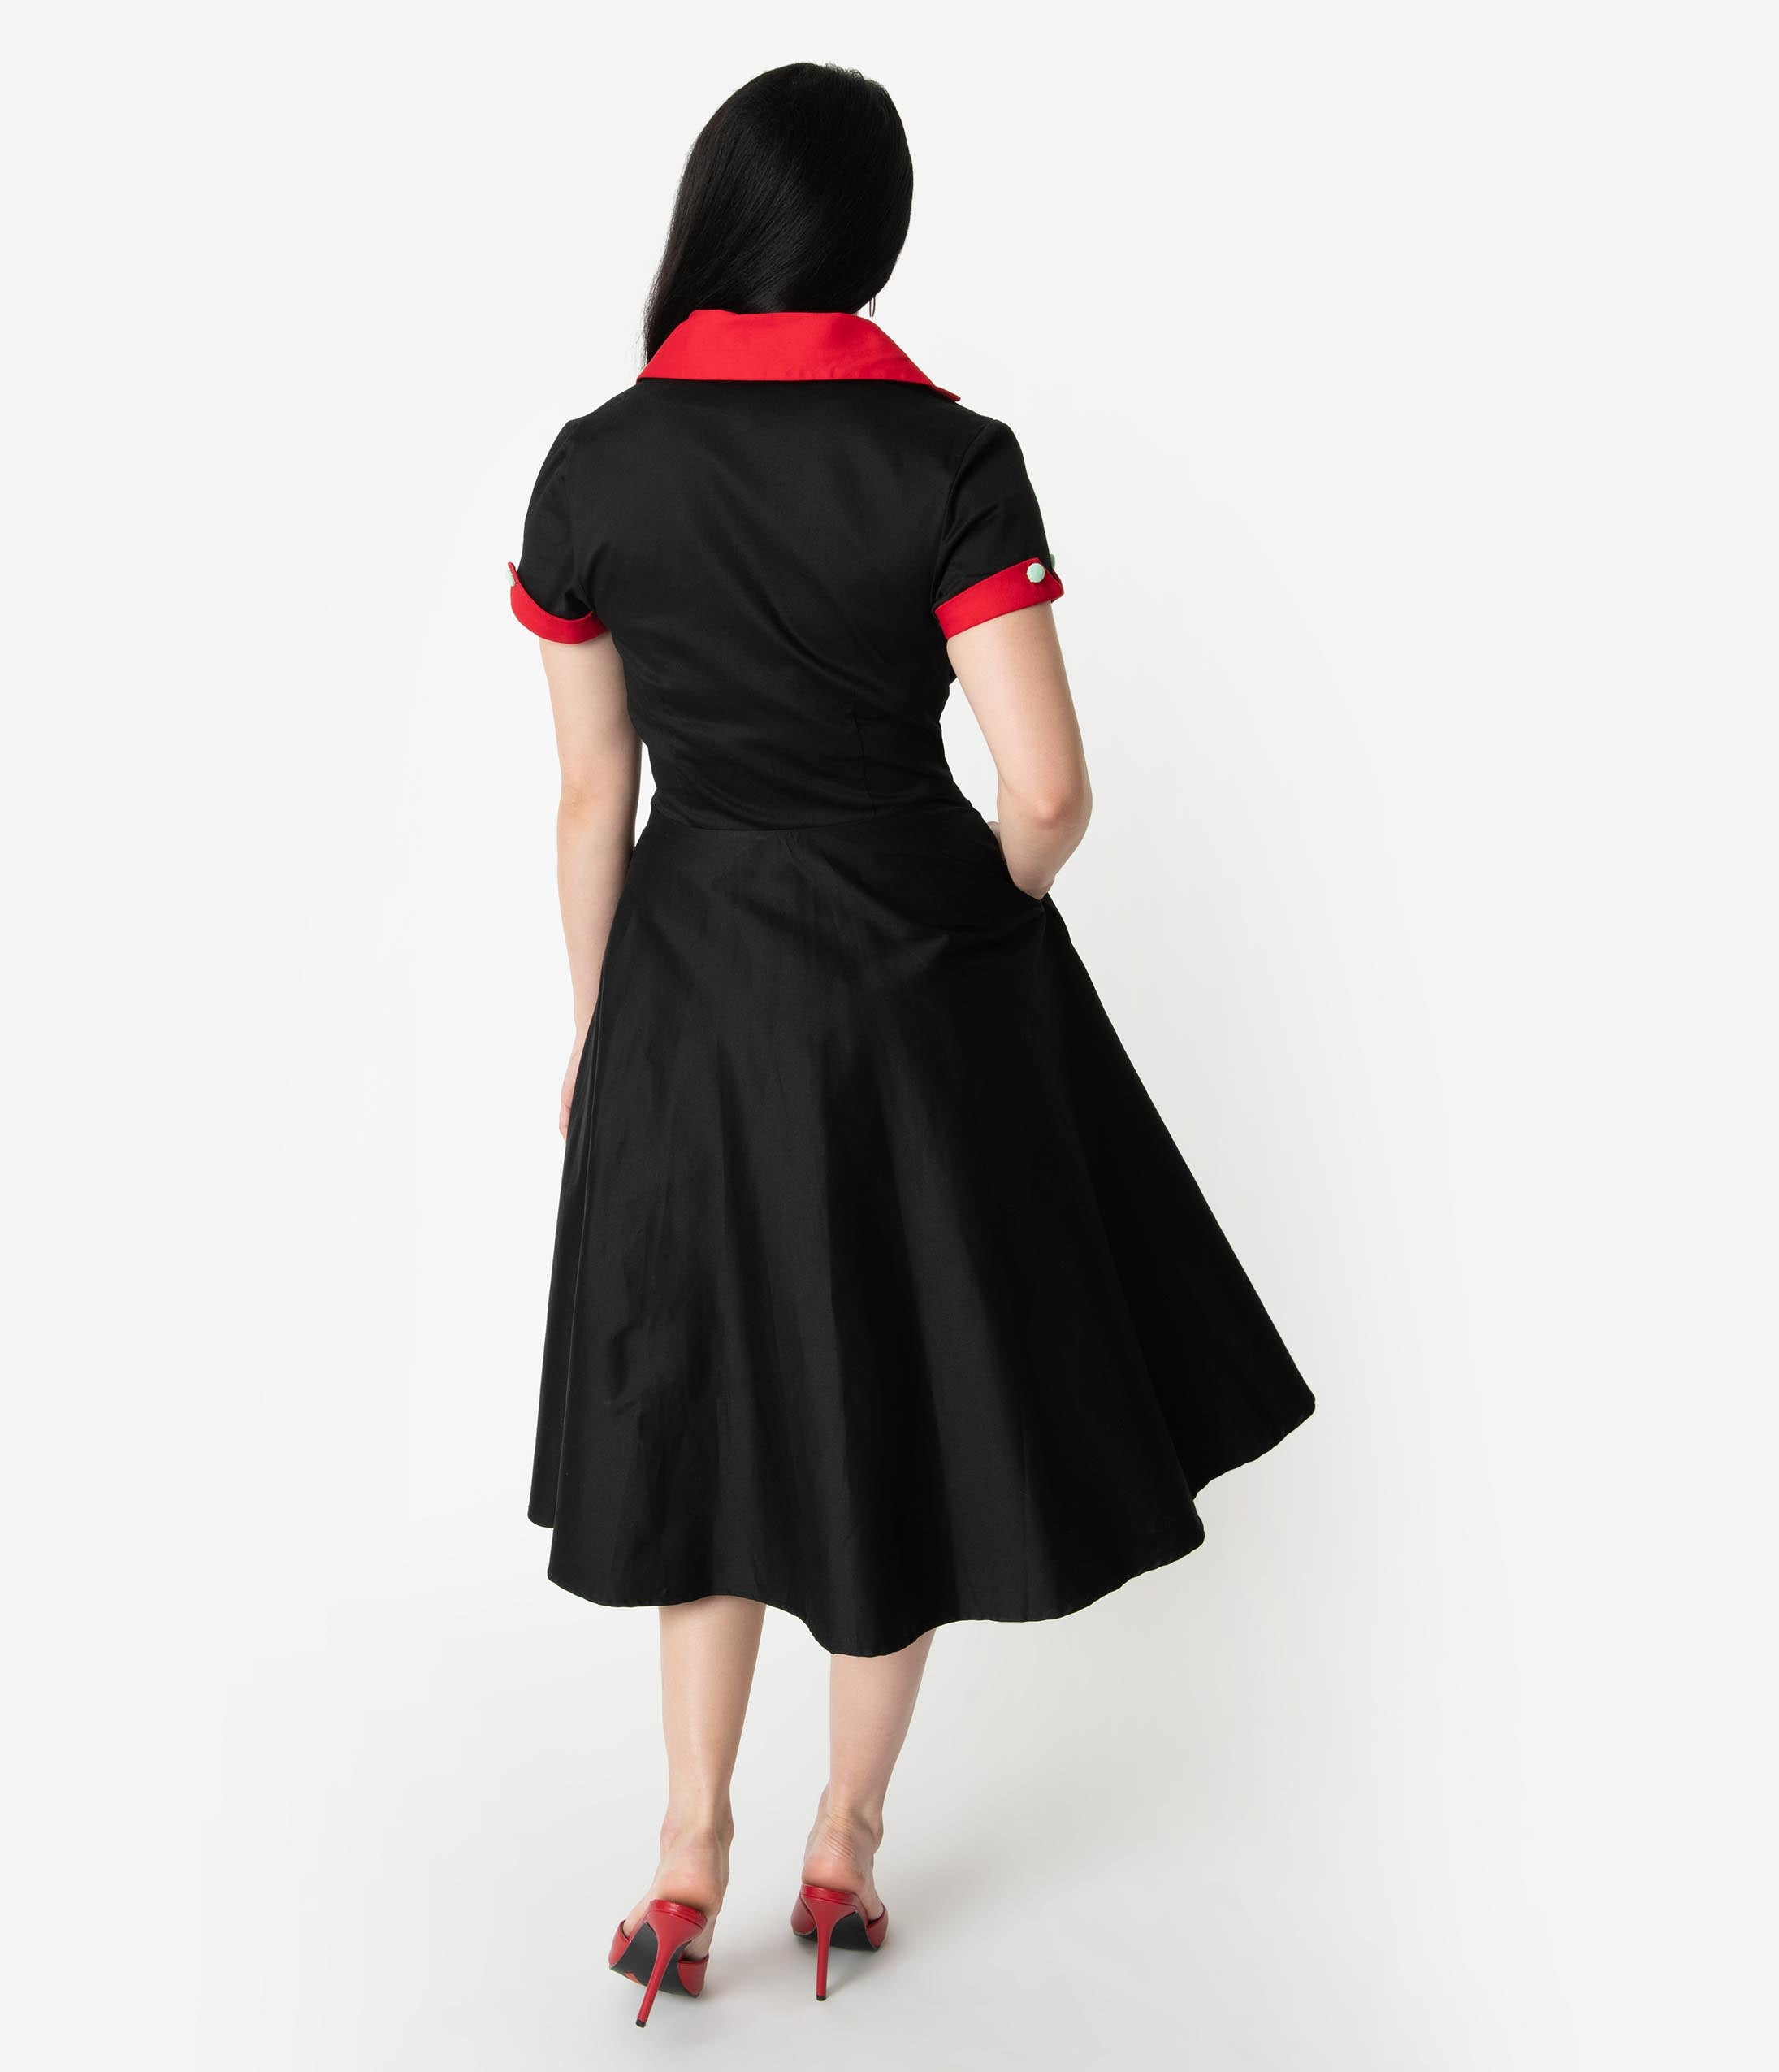 dce46894b994 Coca-Cola Collection by Unique Vintage 1950s Black & Red Fizzy Swing Diner  Dress